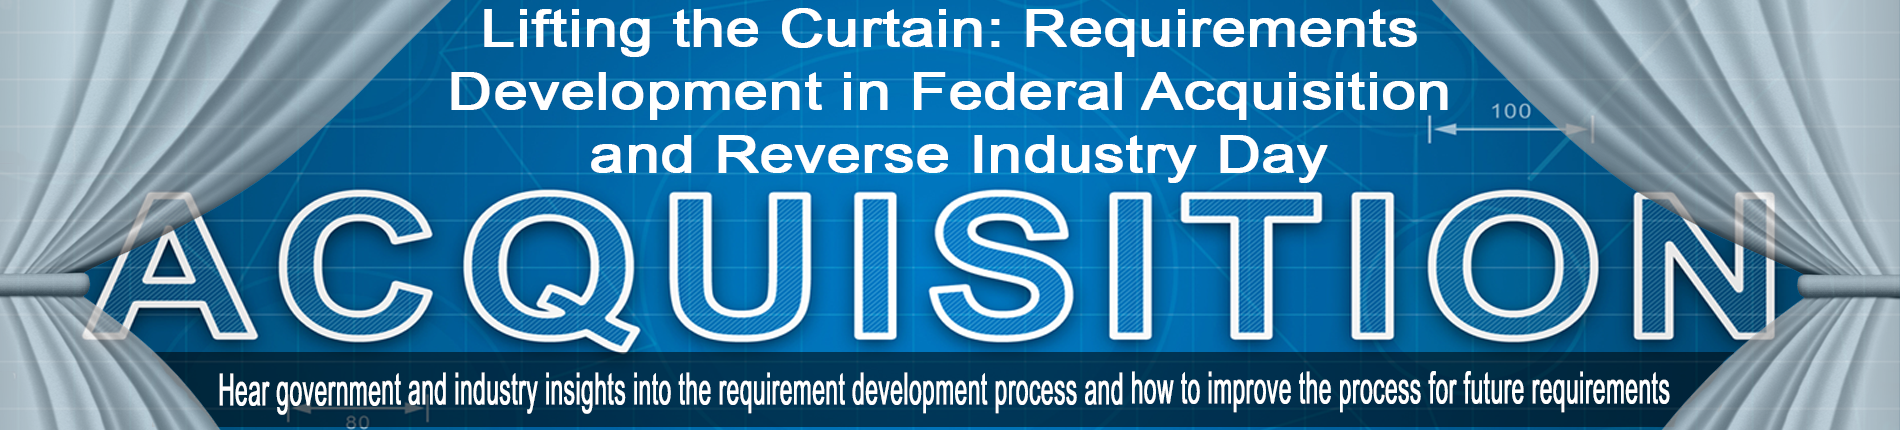 Lifting the Curtain: Requirements Development in Federal Acquisition and Reverse Industry Day 2/21